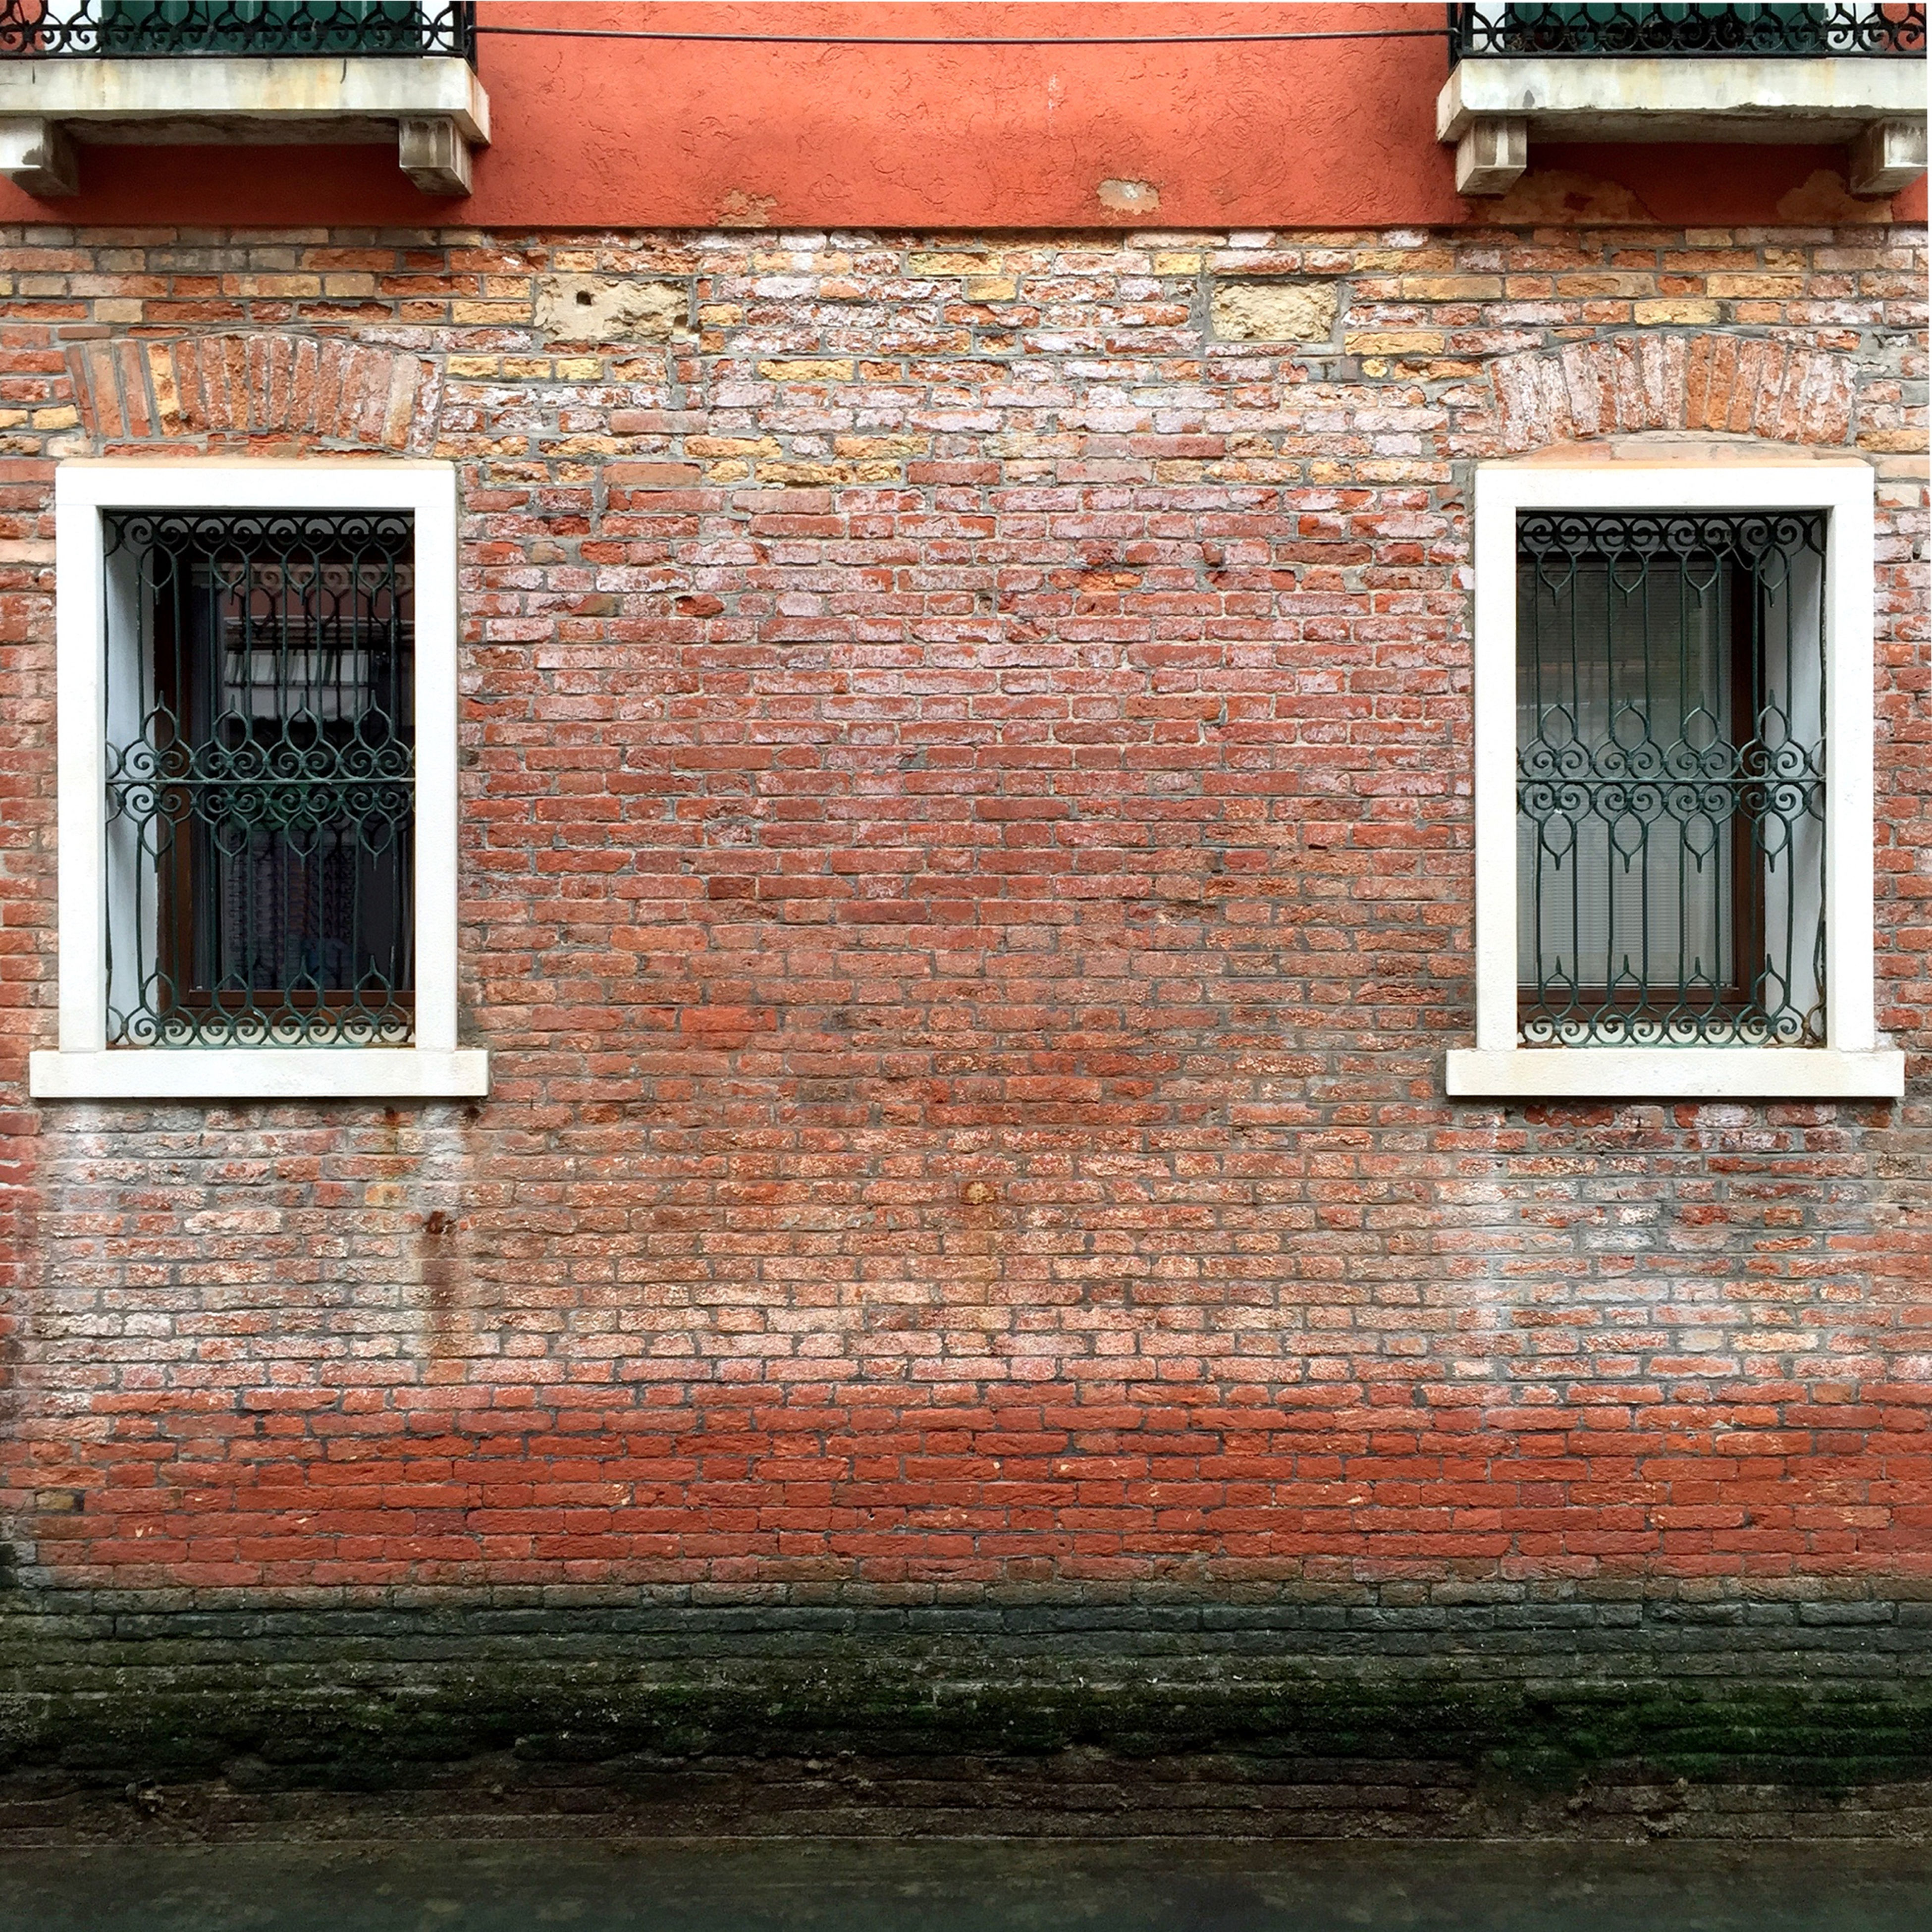 building exterior, architecture, window, built structure, house, door, residential structure, brick wall, closed, residential building, wall, wall - building feature, building, day, outdoors, no people, old, sunlight, facade, exterior